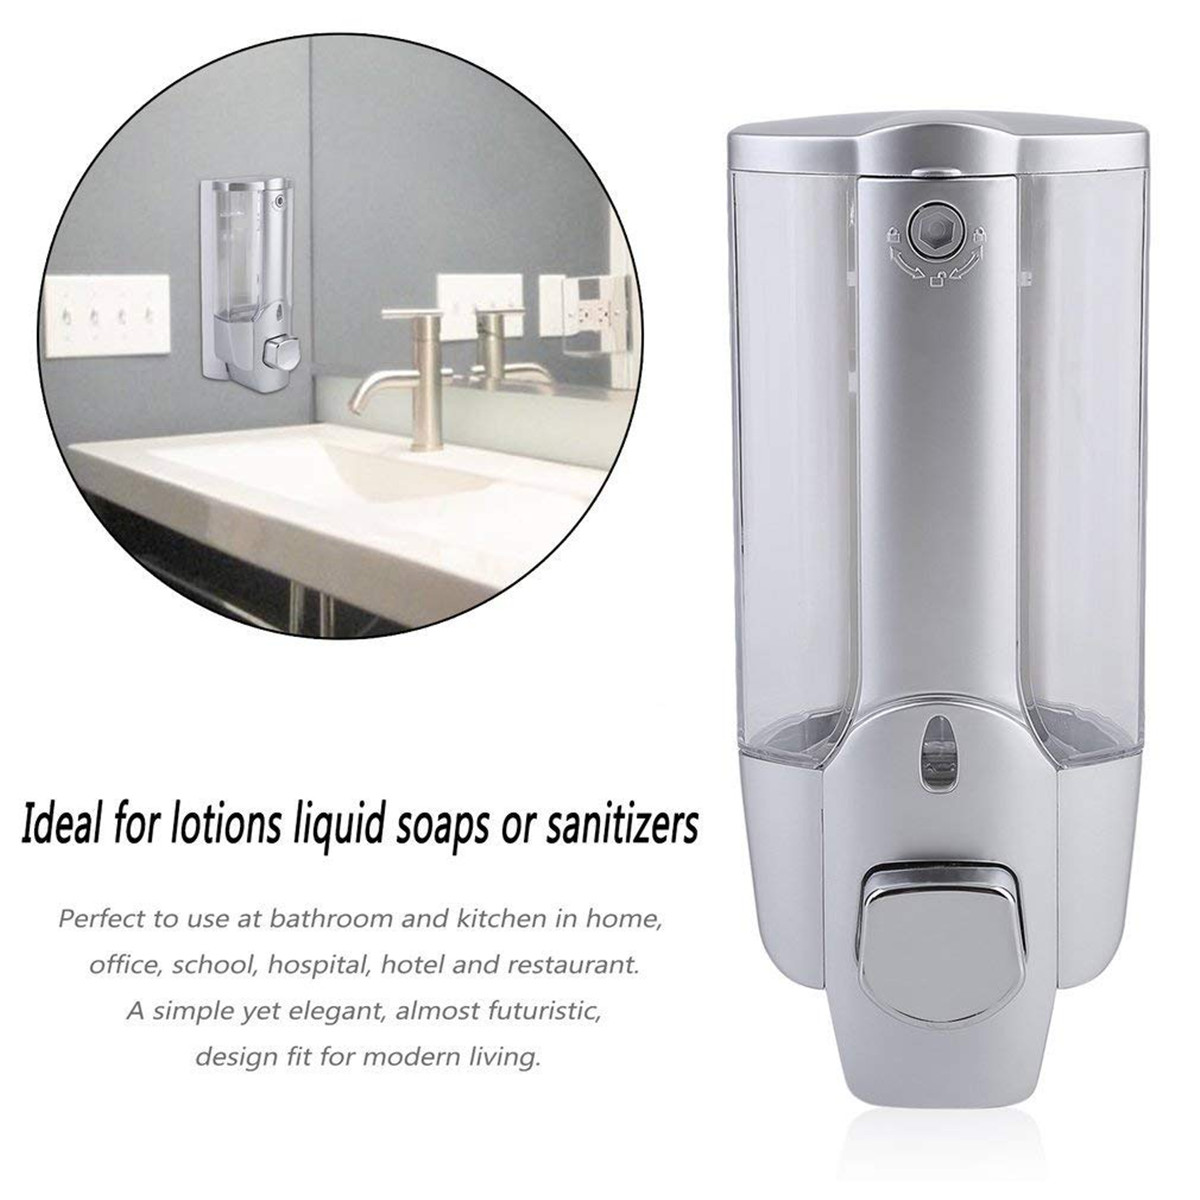 Hbe8dfc521e64436c92f67762acbcb38bY 350ml Hand Soap Dispenser Wall Mount Shower Shampoo Dispensers Containers with Lock for Bathroom Washroom Hand Soap Dispenser